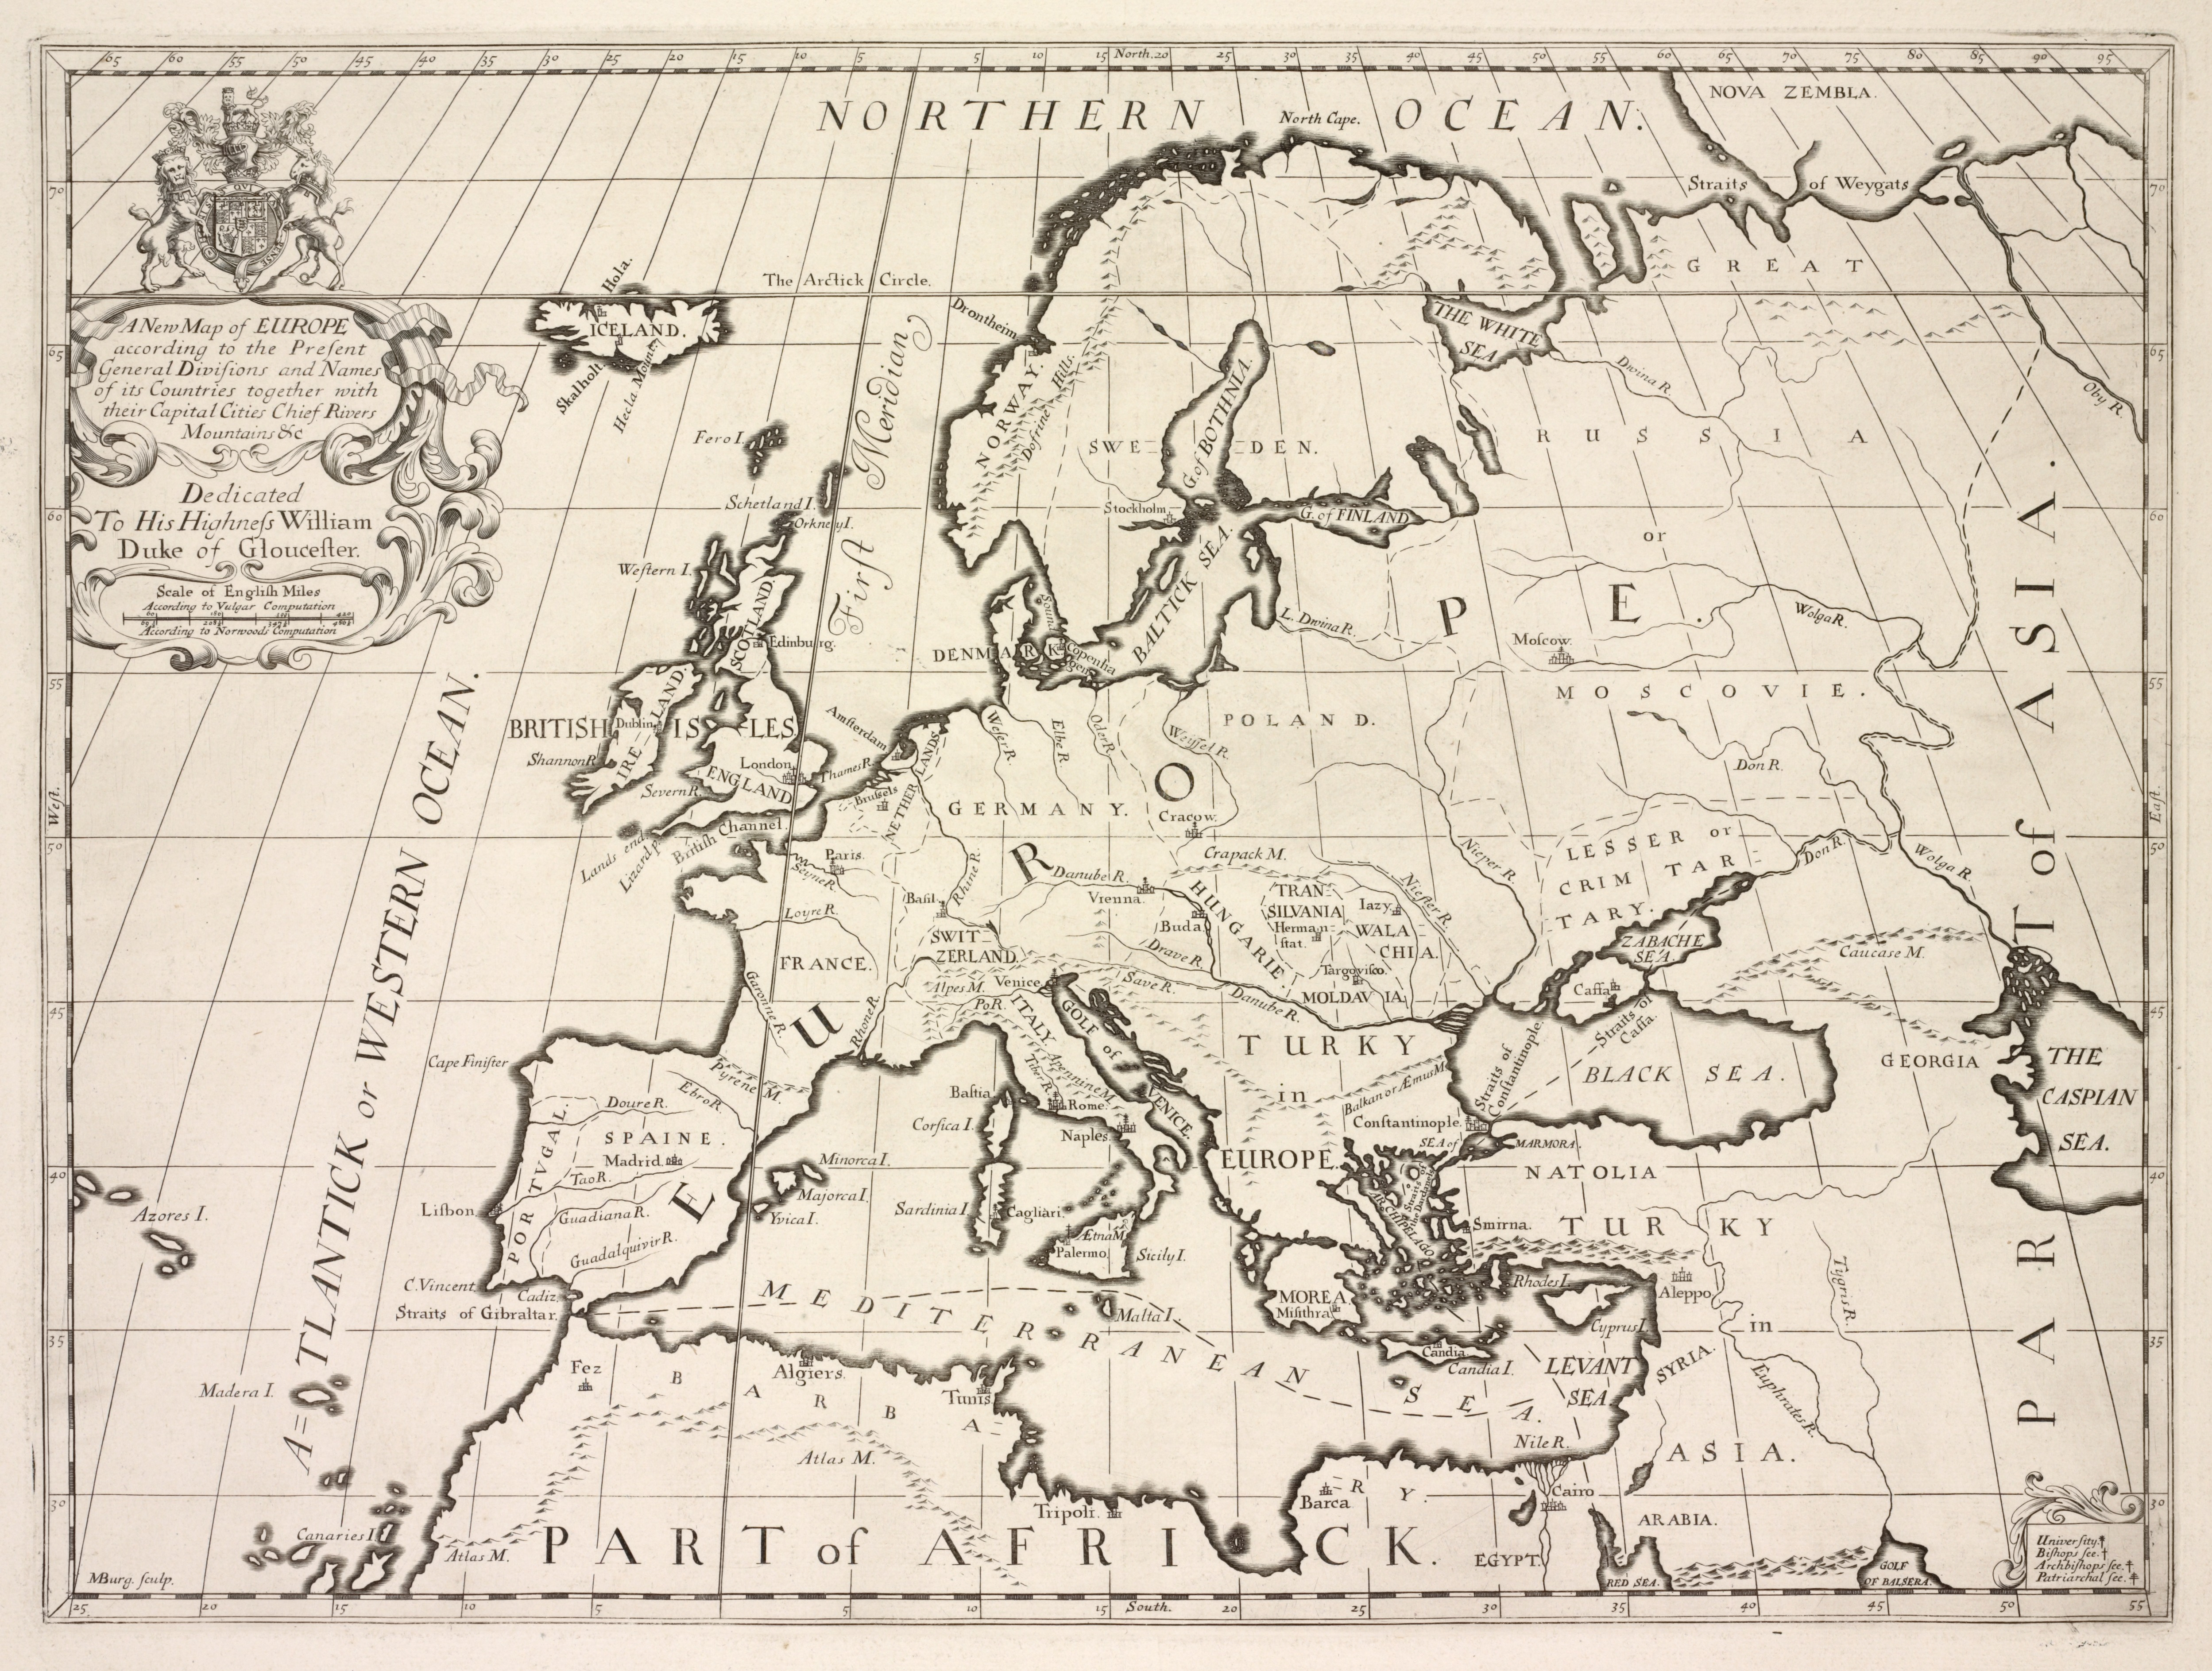 FileA new map of Europe according to the present general – Map of Europe with Cities and Rivers